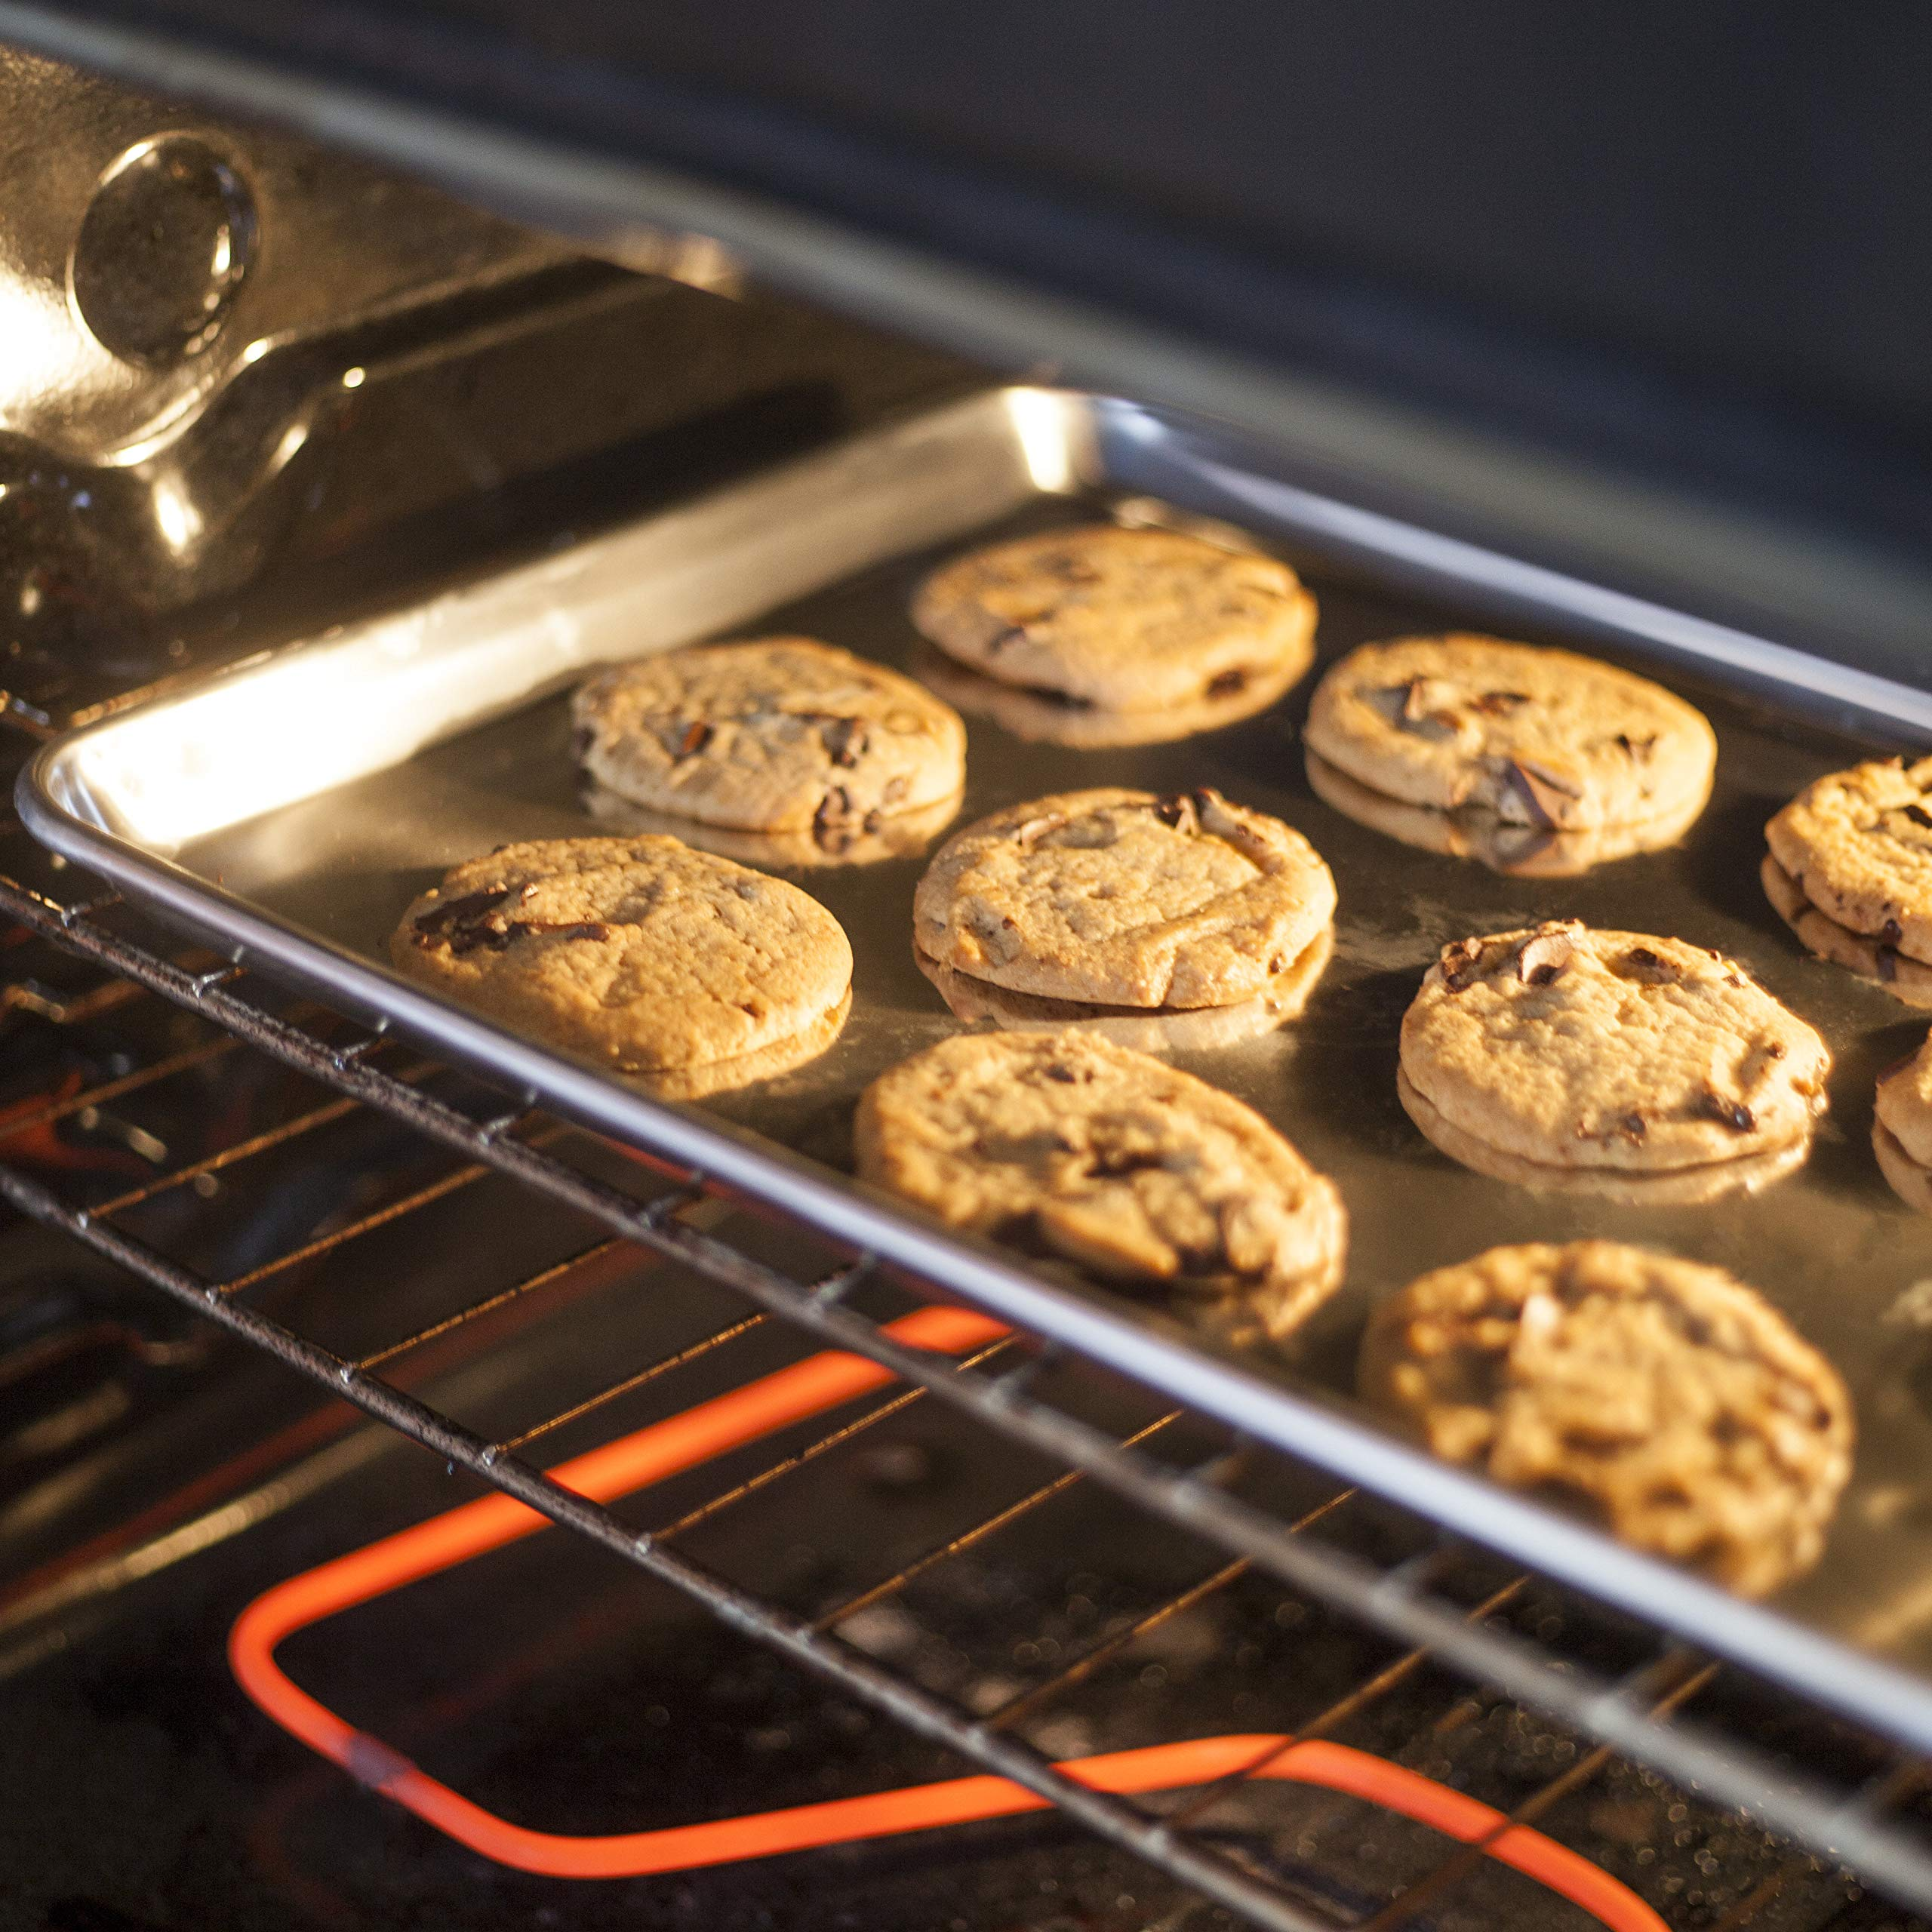 KITCHENATICS Baking Sheet with Cooling Rack: Half Aluminum Cookie Pan Tray with Stainless Steel Wire and Roasting Rack - 13.1'' x 17.9'', Heavy Duty Commercial Quality by KITCHENATICS (Image #5)